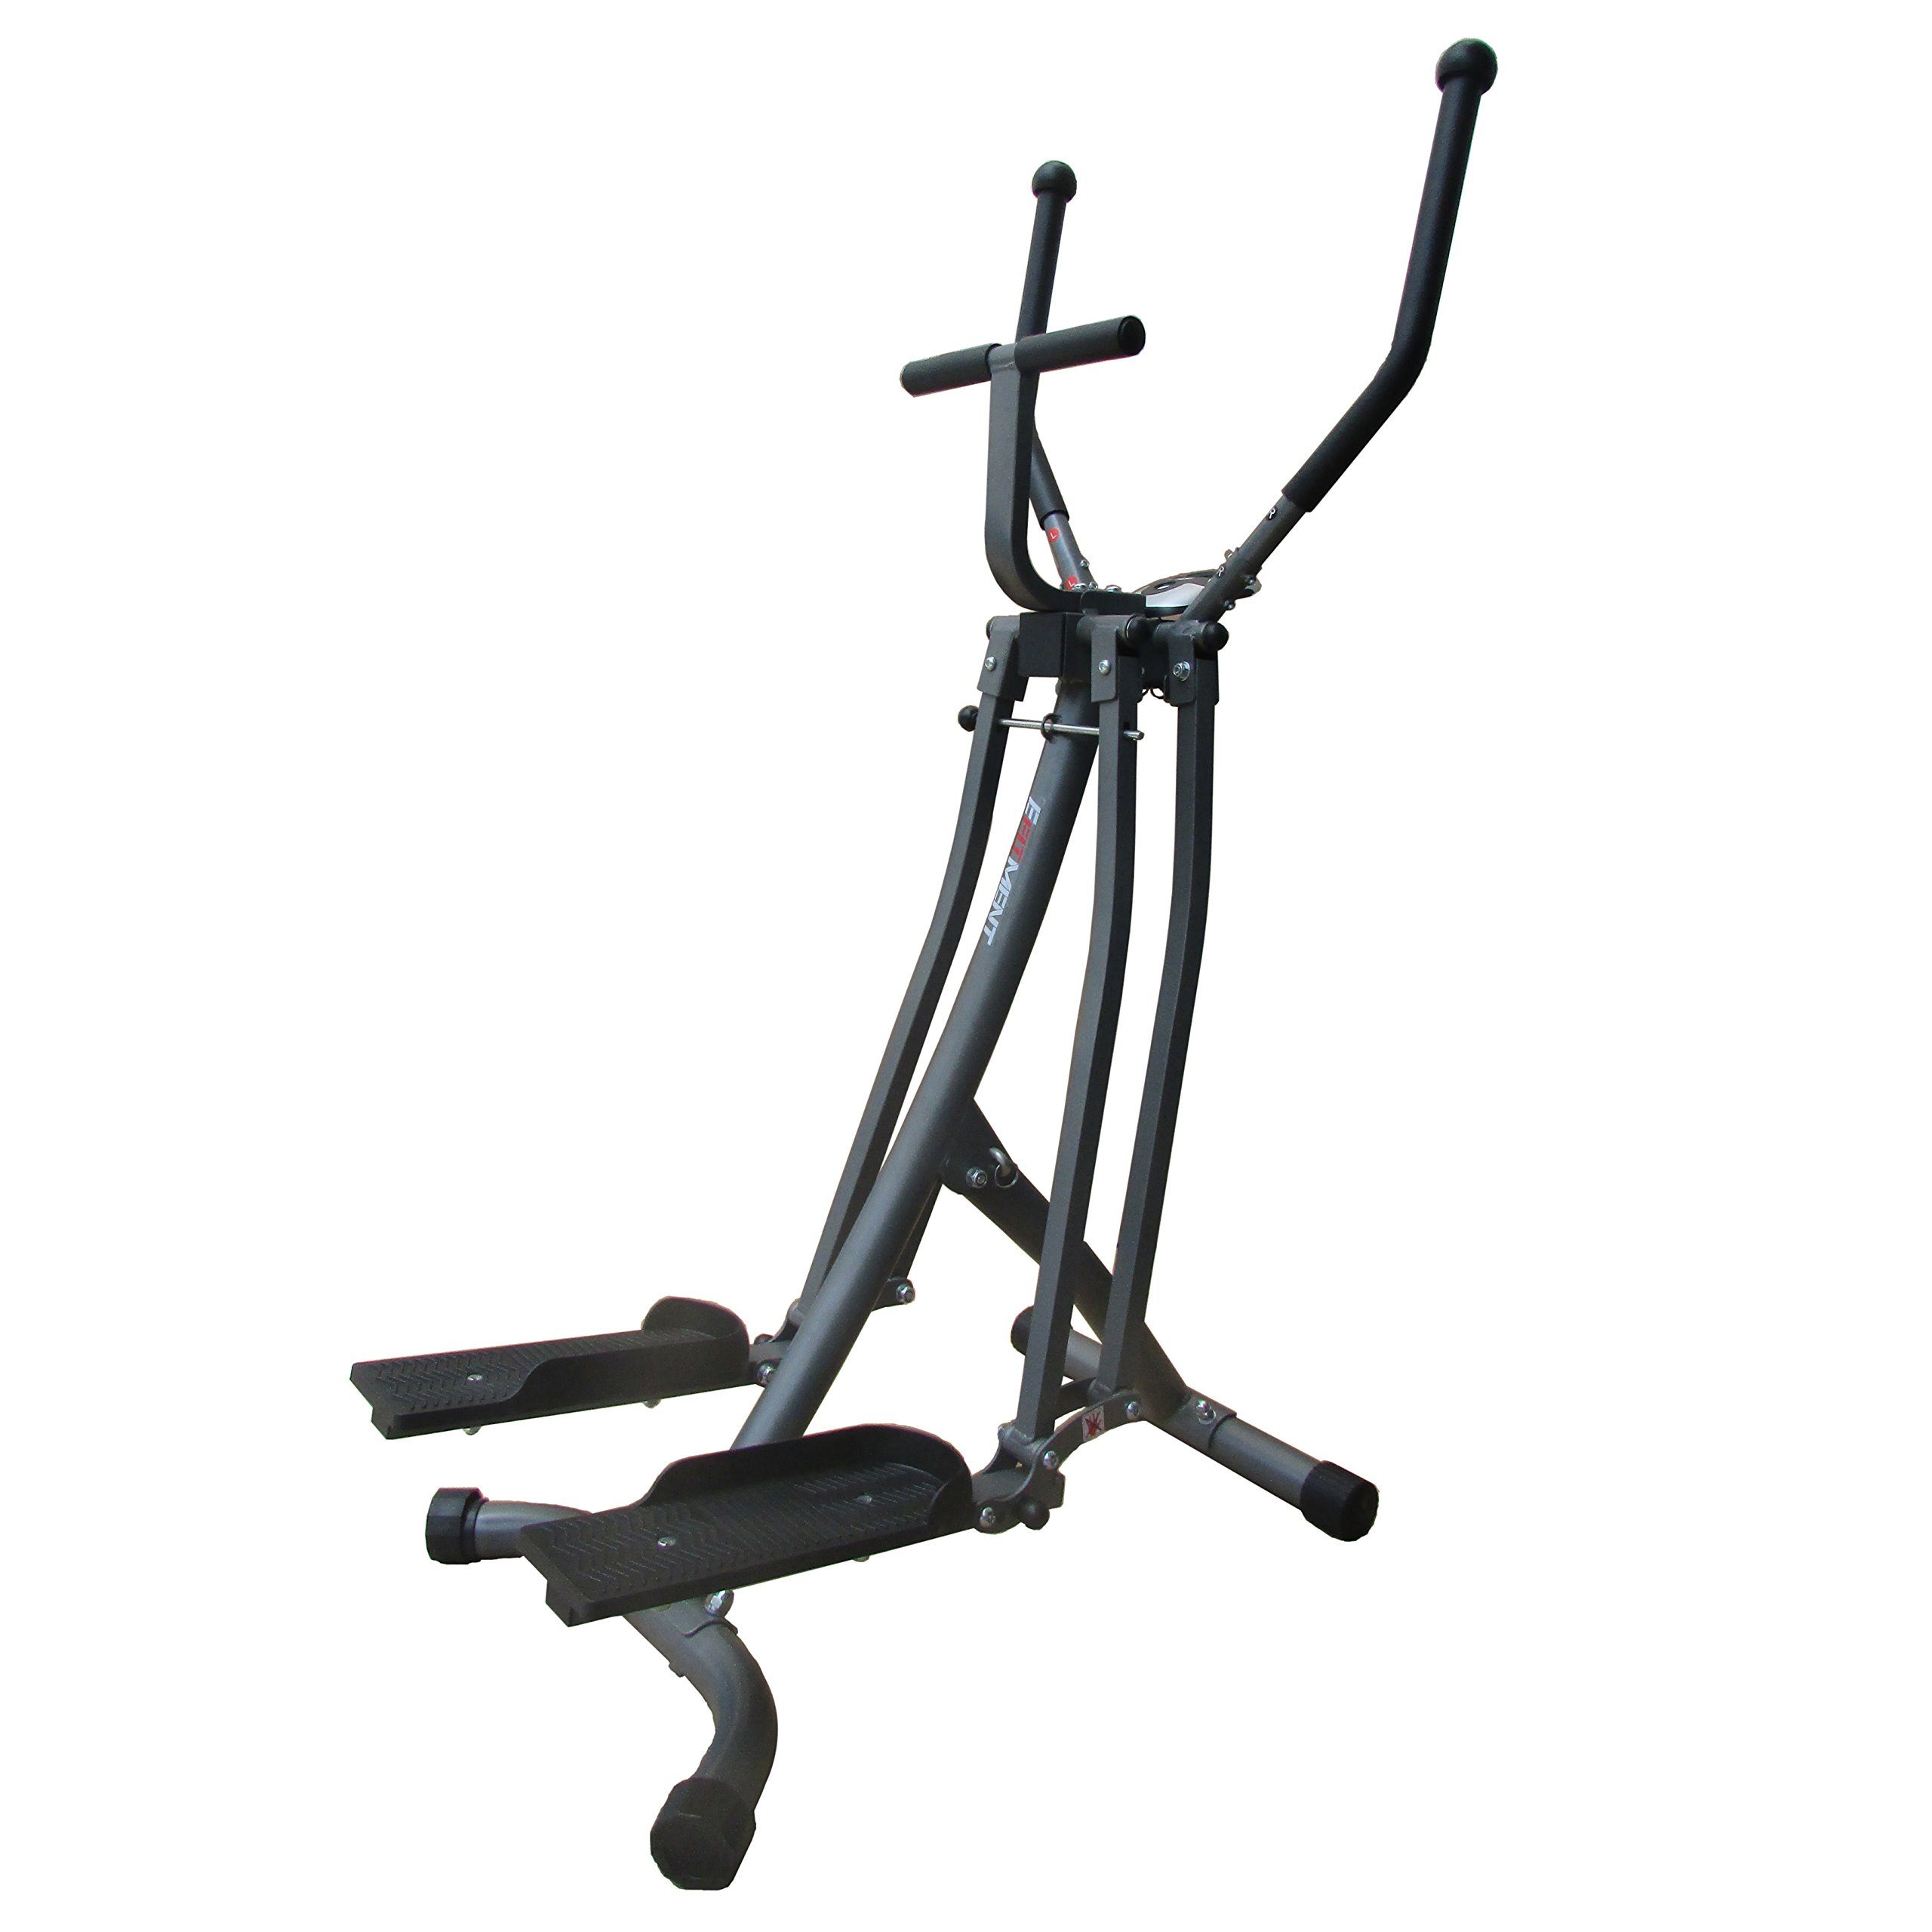 Air Walker Glider Elliptical Machine with Side Sway Action for Exercise and Fitness by EFITMENT - E020 by EFITMENT